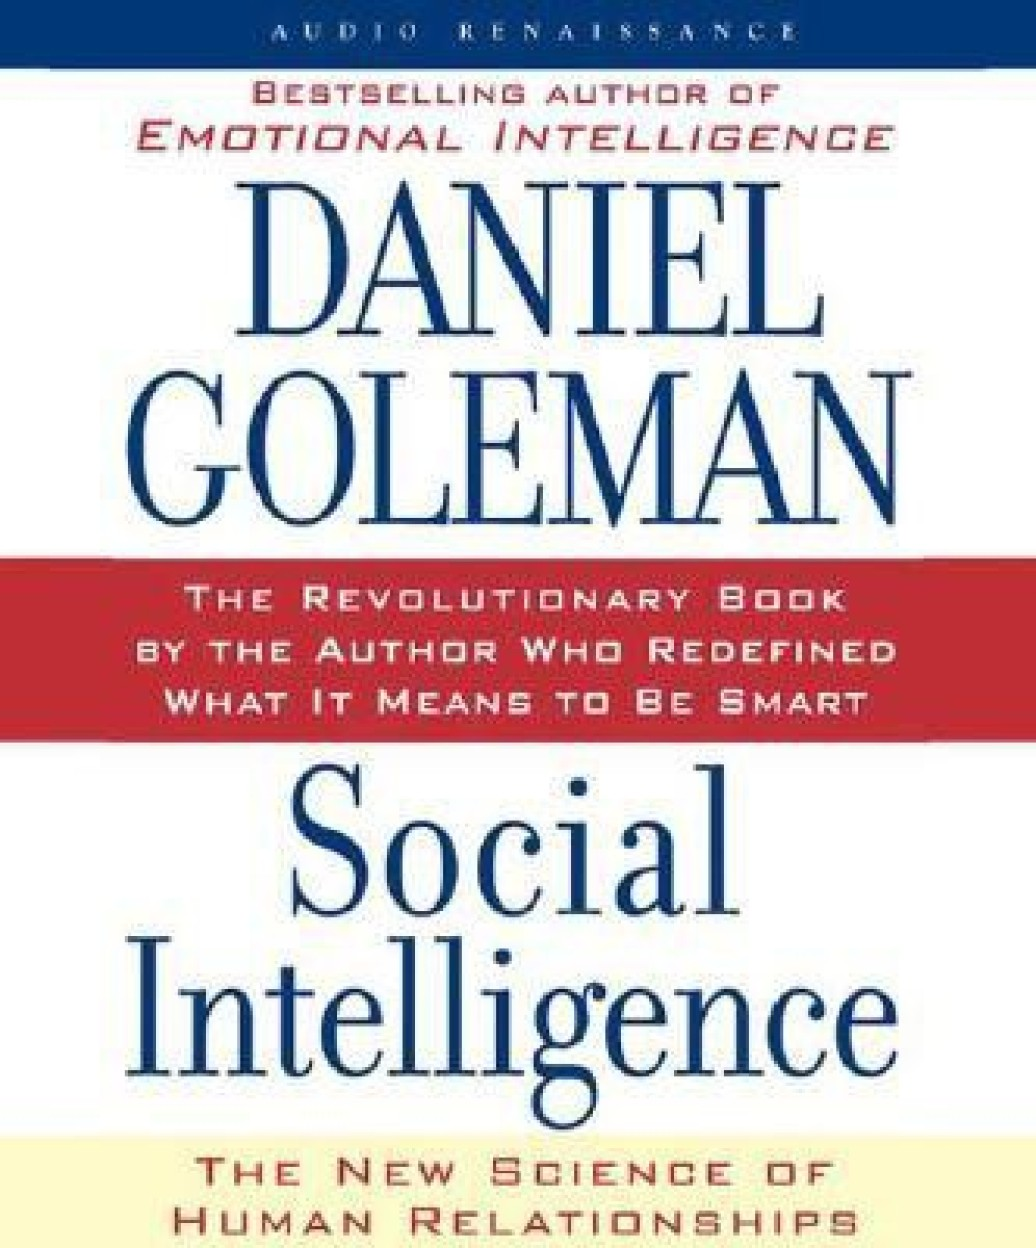 SOCIAL INTELLIGENCE 5CD'S (ABRIDGED) THE NEW SCIENCE OF HUMAN RELATIONSHIPS - Daniel Goleman